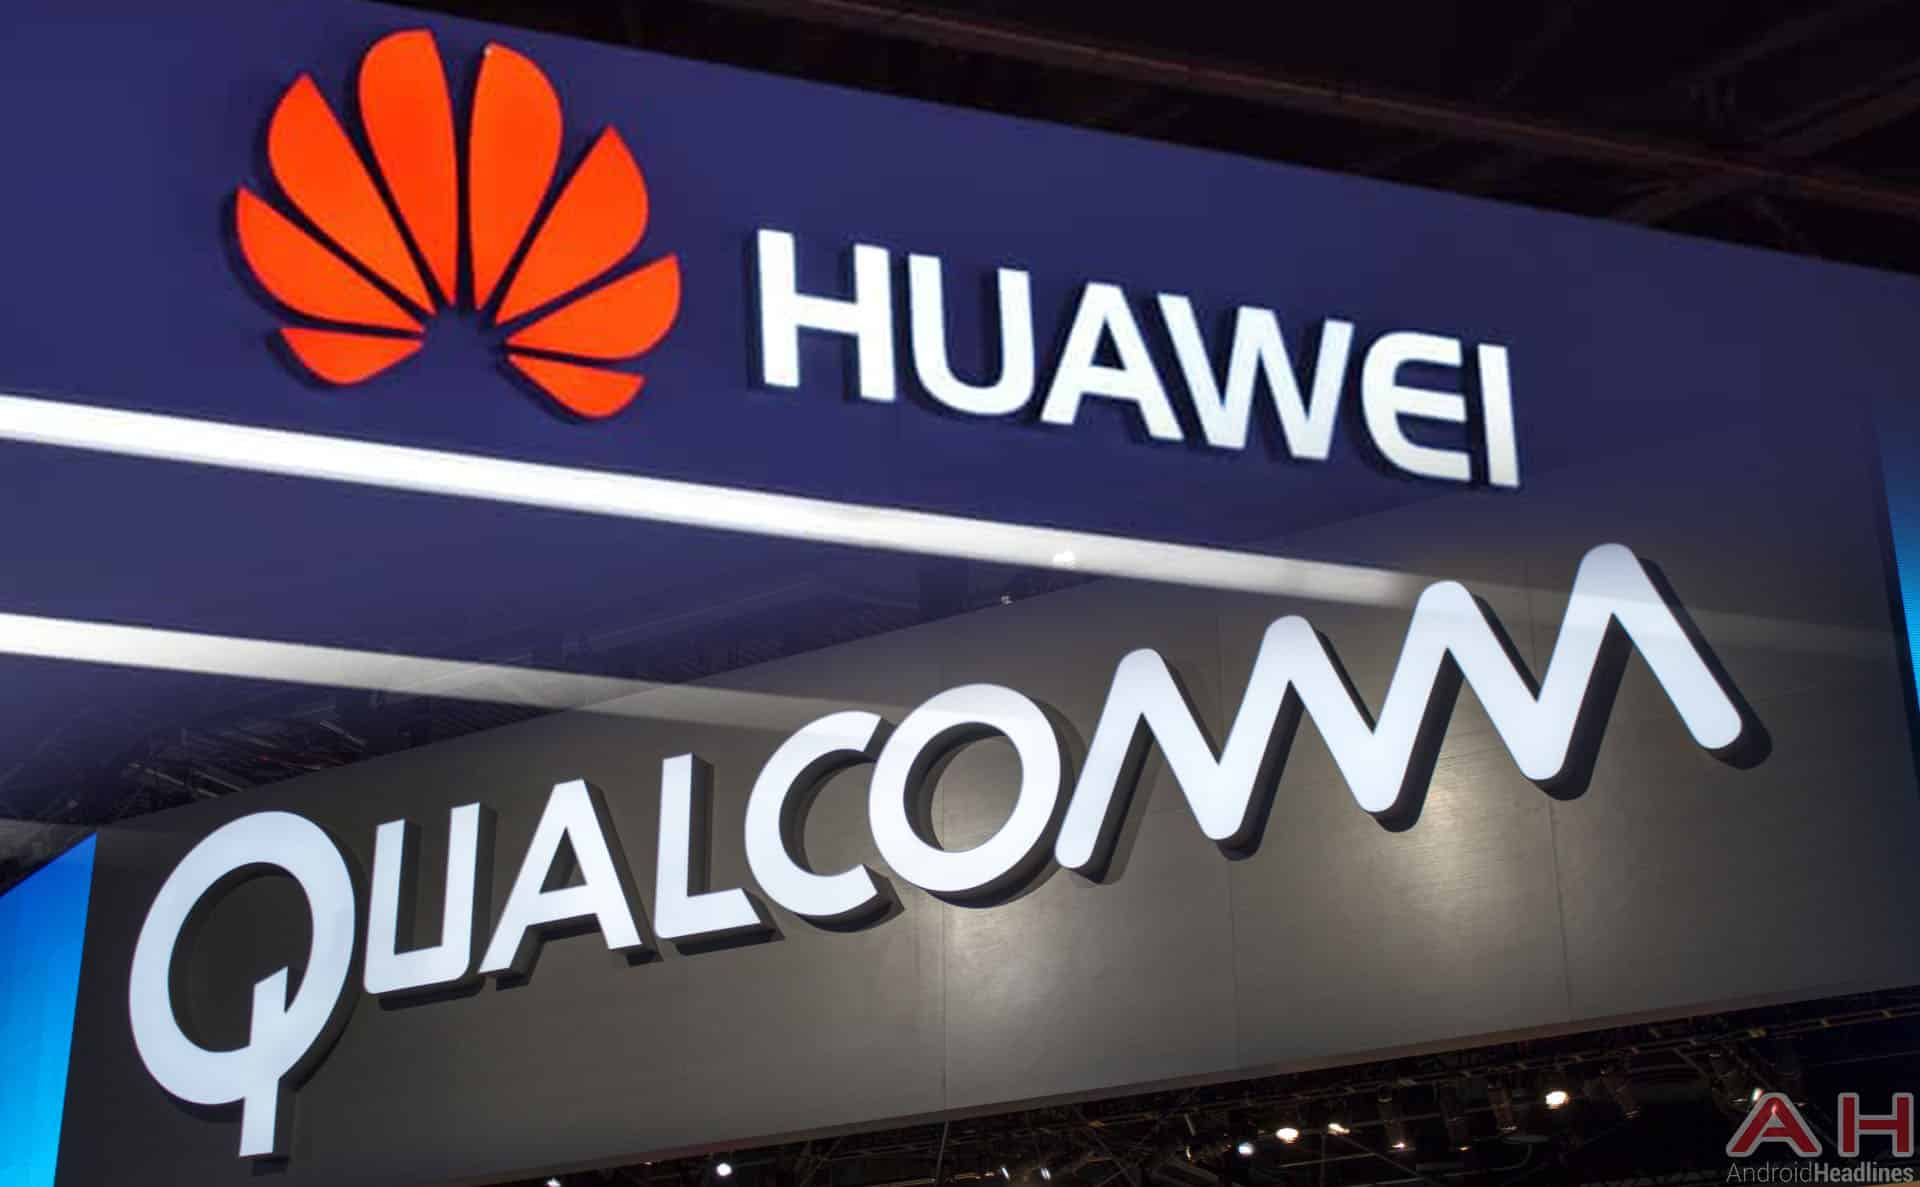 Huawei Qualcomm Logos AH Feb 18